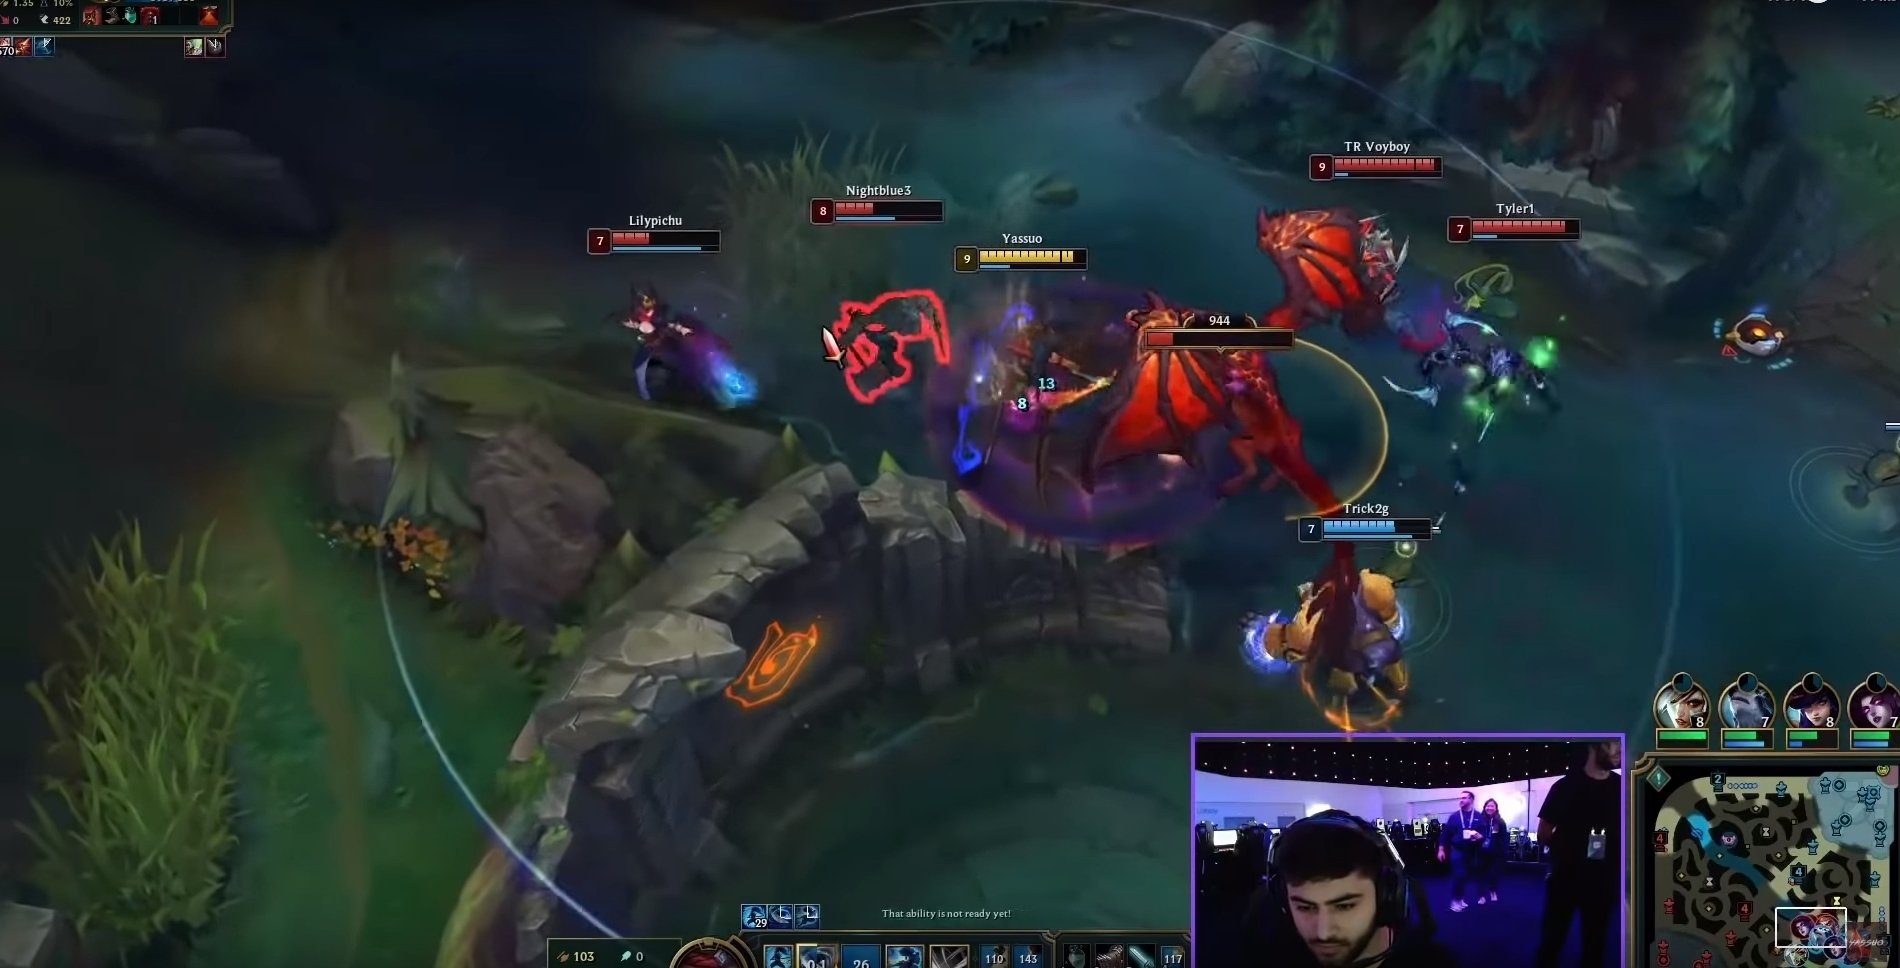 Tyler1's Twitch Rivals Team Beat Yassuo's Twitch Rivals Team To Become The League Of Legends Champions